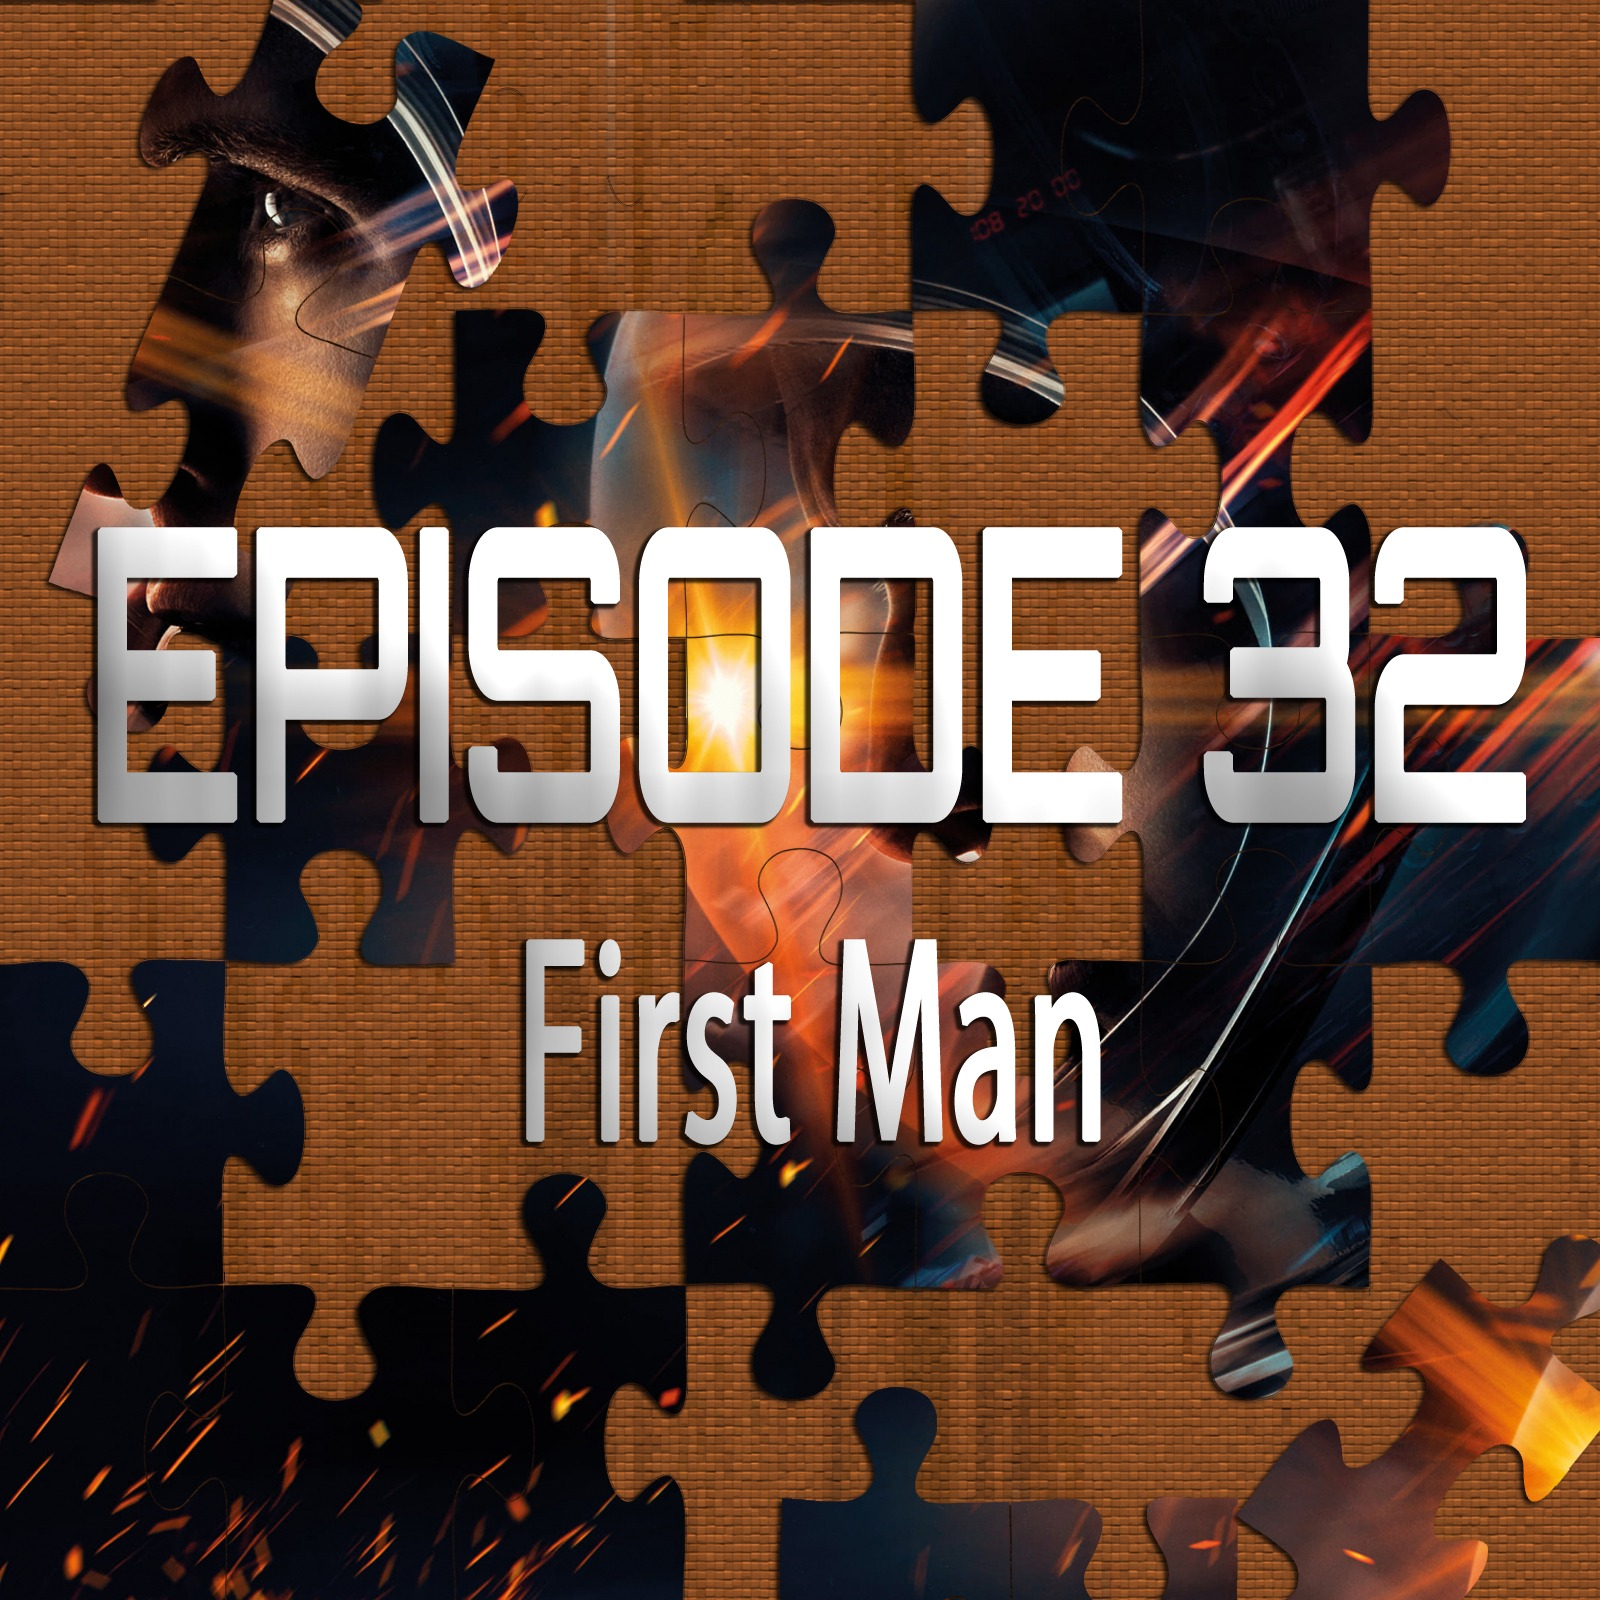 First Man (Featuring Brian Garth)